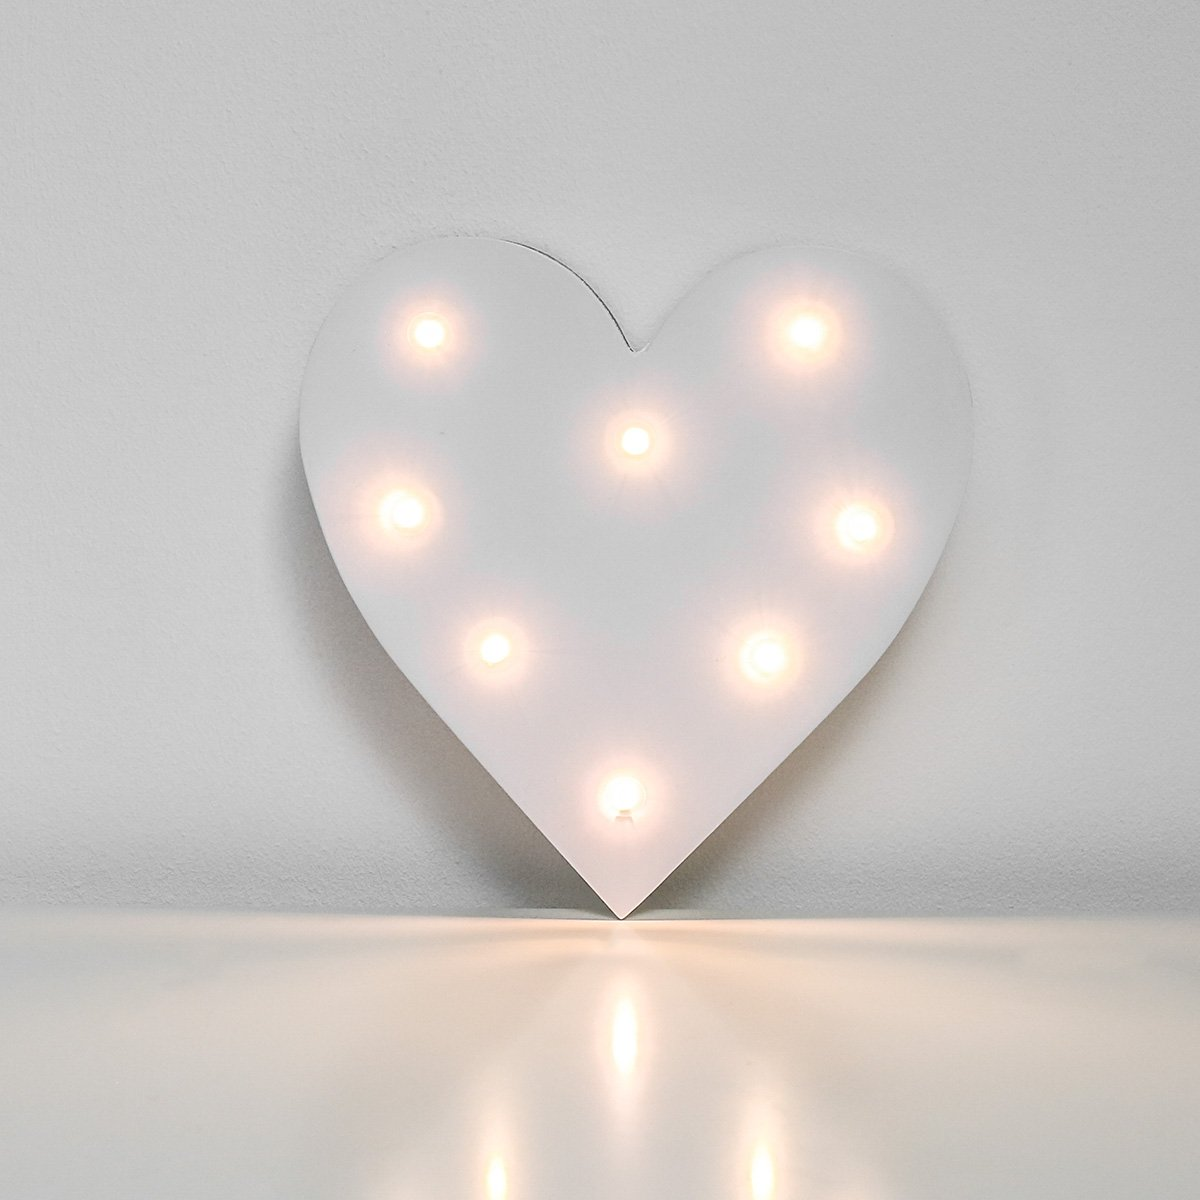 Festive Lights Light Up Letters - Warm White LEDs - Battery Operated - 16cm by (A)